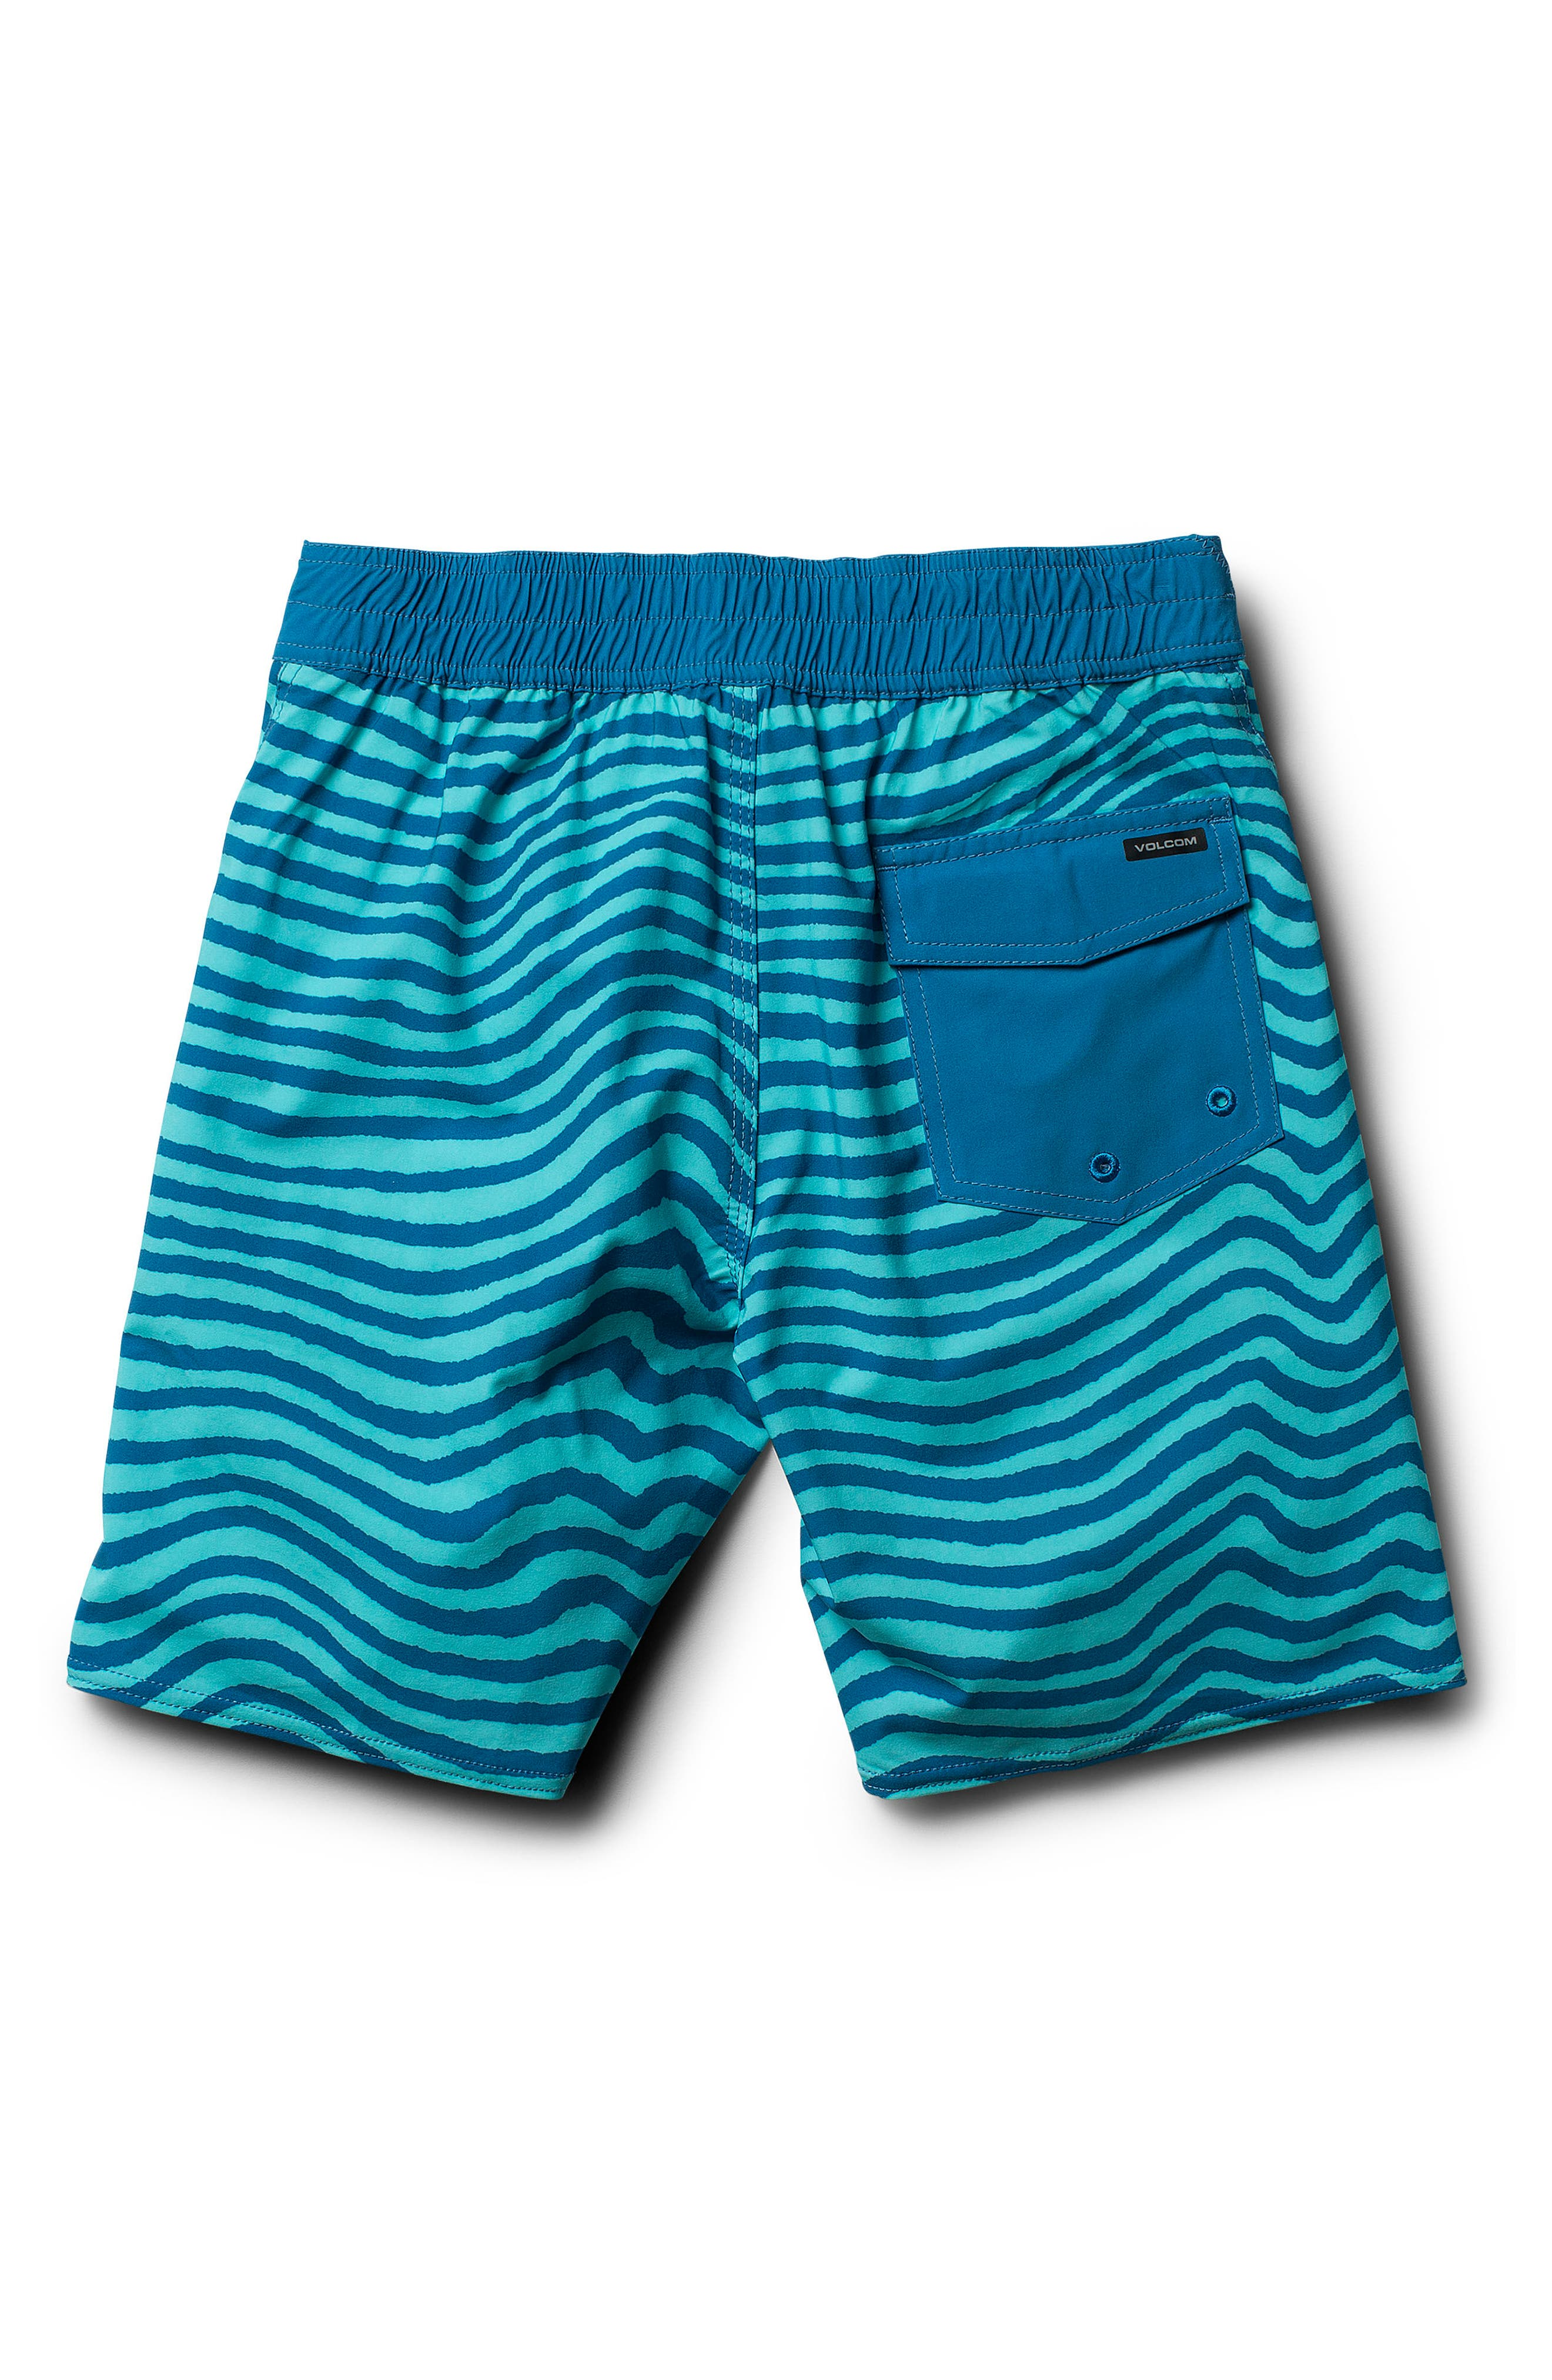 Mag Vibes Board Shorts,                             Alternate thumbnail 2, color,                             Bright Turquoise